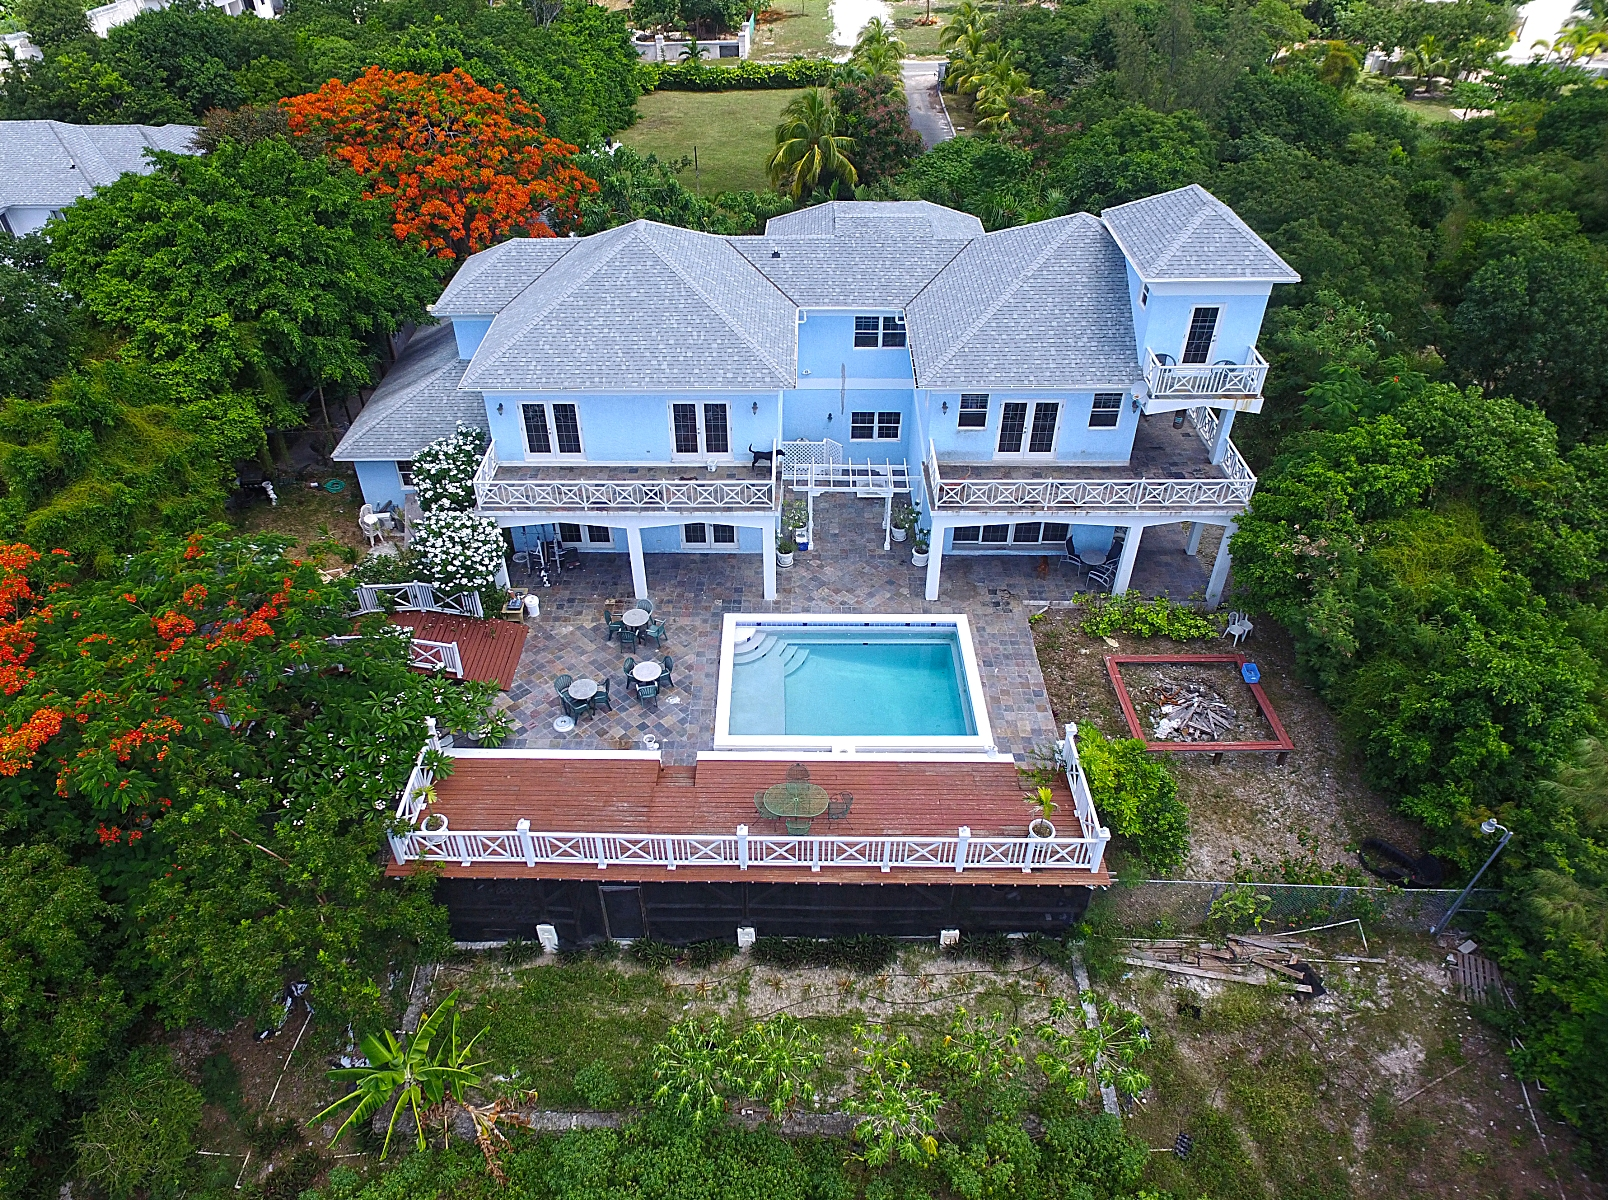 Single Family Home for Sale at Lakeview Residence at Westridge Estates - MLS 27472 Westridge Estates, Westridge, Nassau And Paradise Island Bahamas